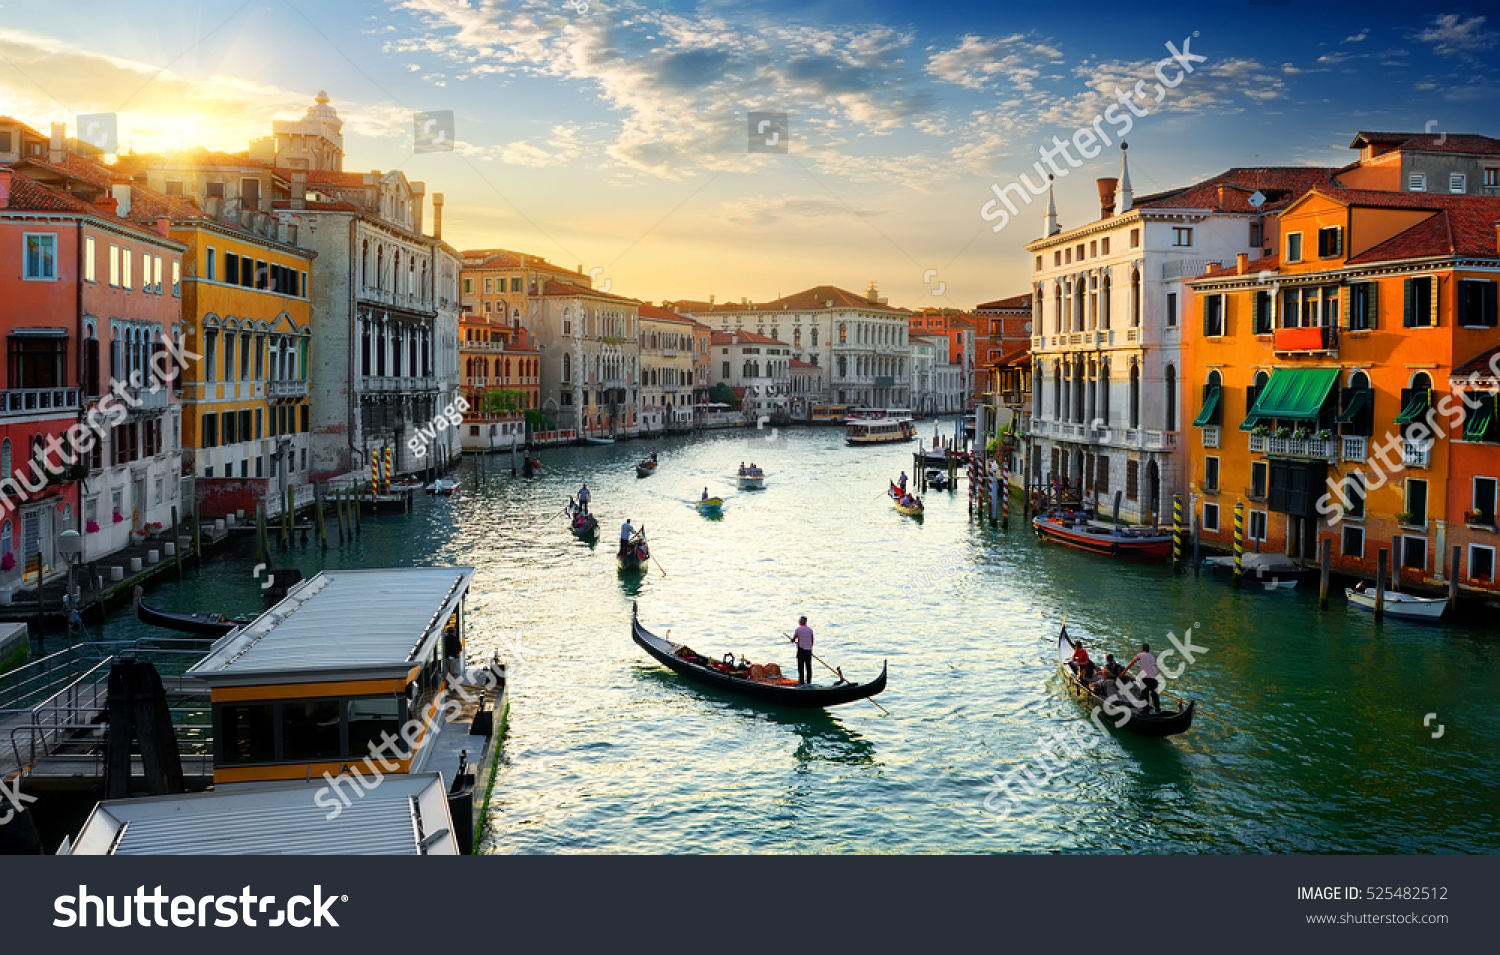 Grand Canal in Venice at the sunset, Italy. #525482512